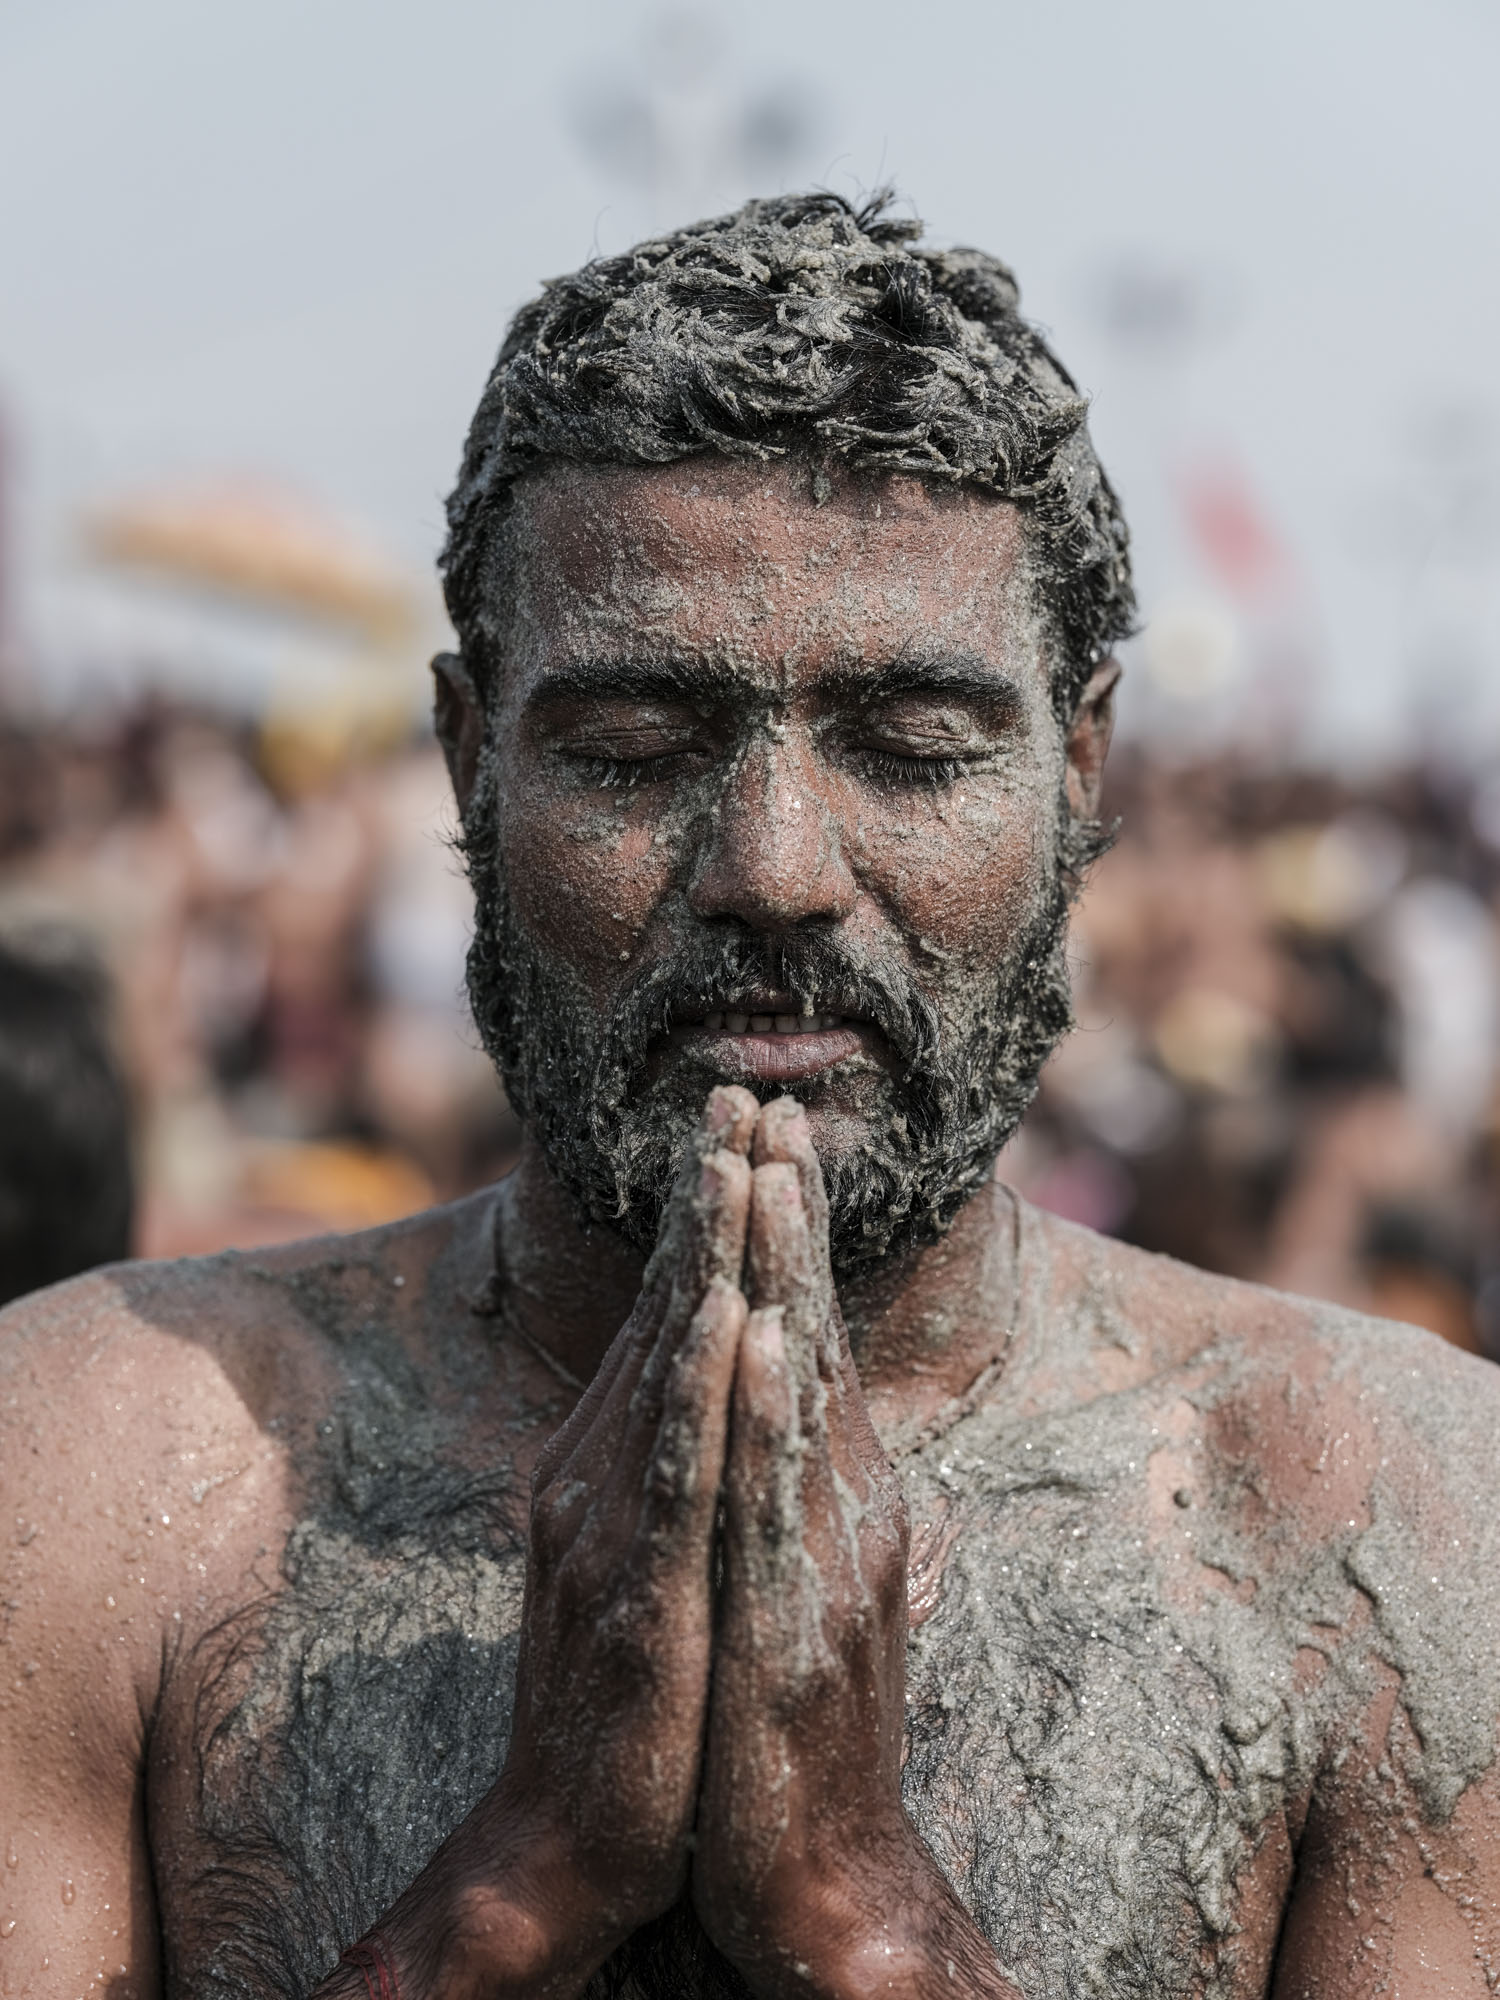 4 february man prayer pilgrims Kumbh mela 2019 India Allahabad Prayagraj Ardh hindu religious Festival event rivers photographer jose jeuland photography